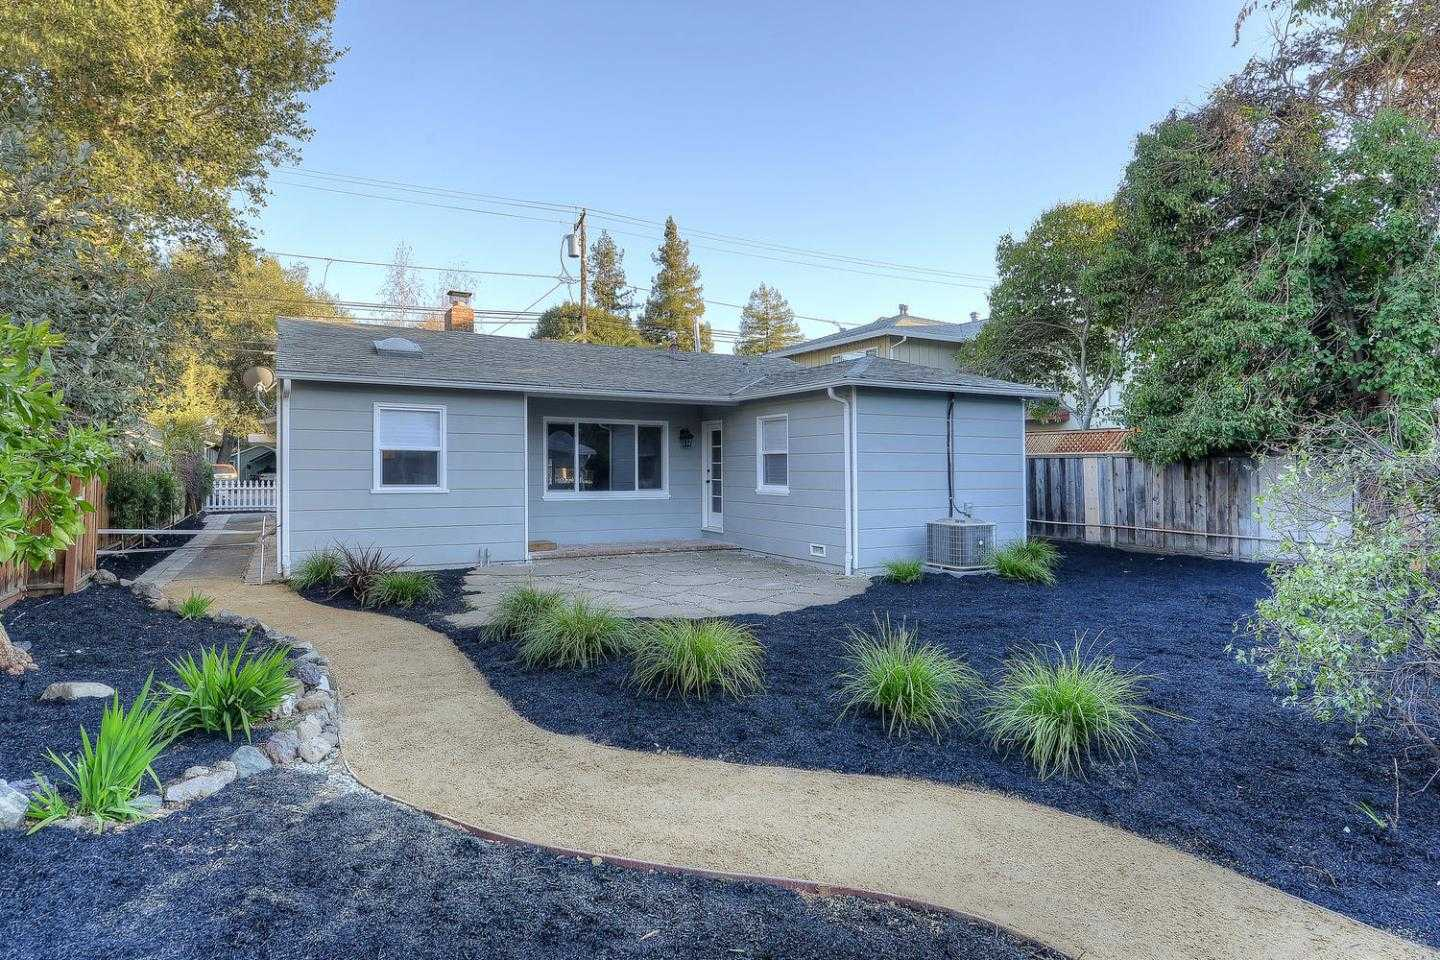 $2,698,000 - 5Br/4Ba -  for Sale in Palo Alto